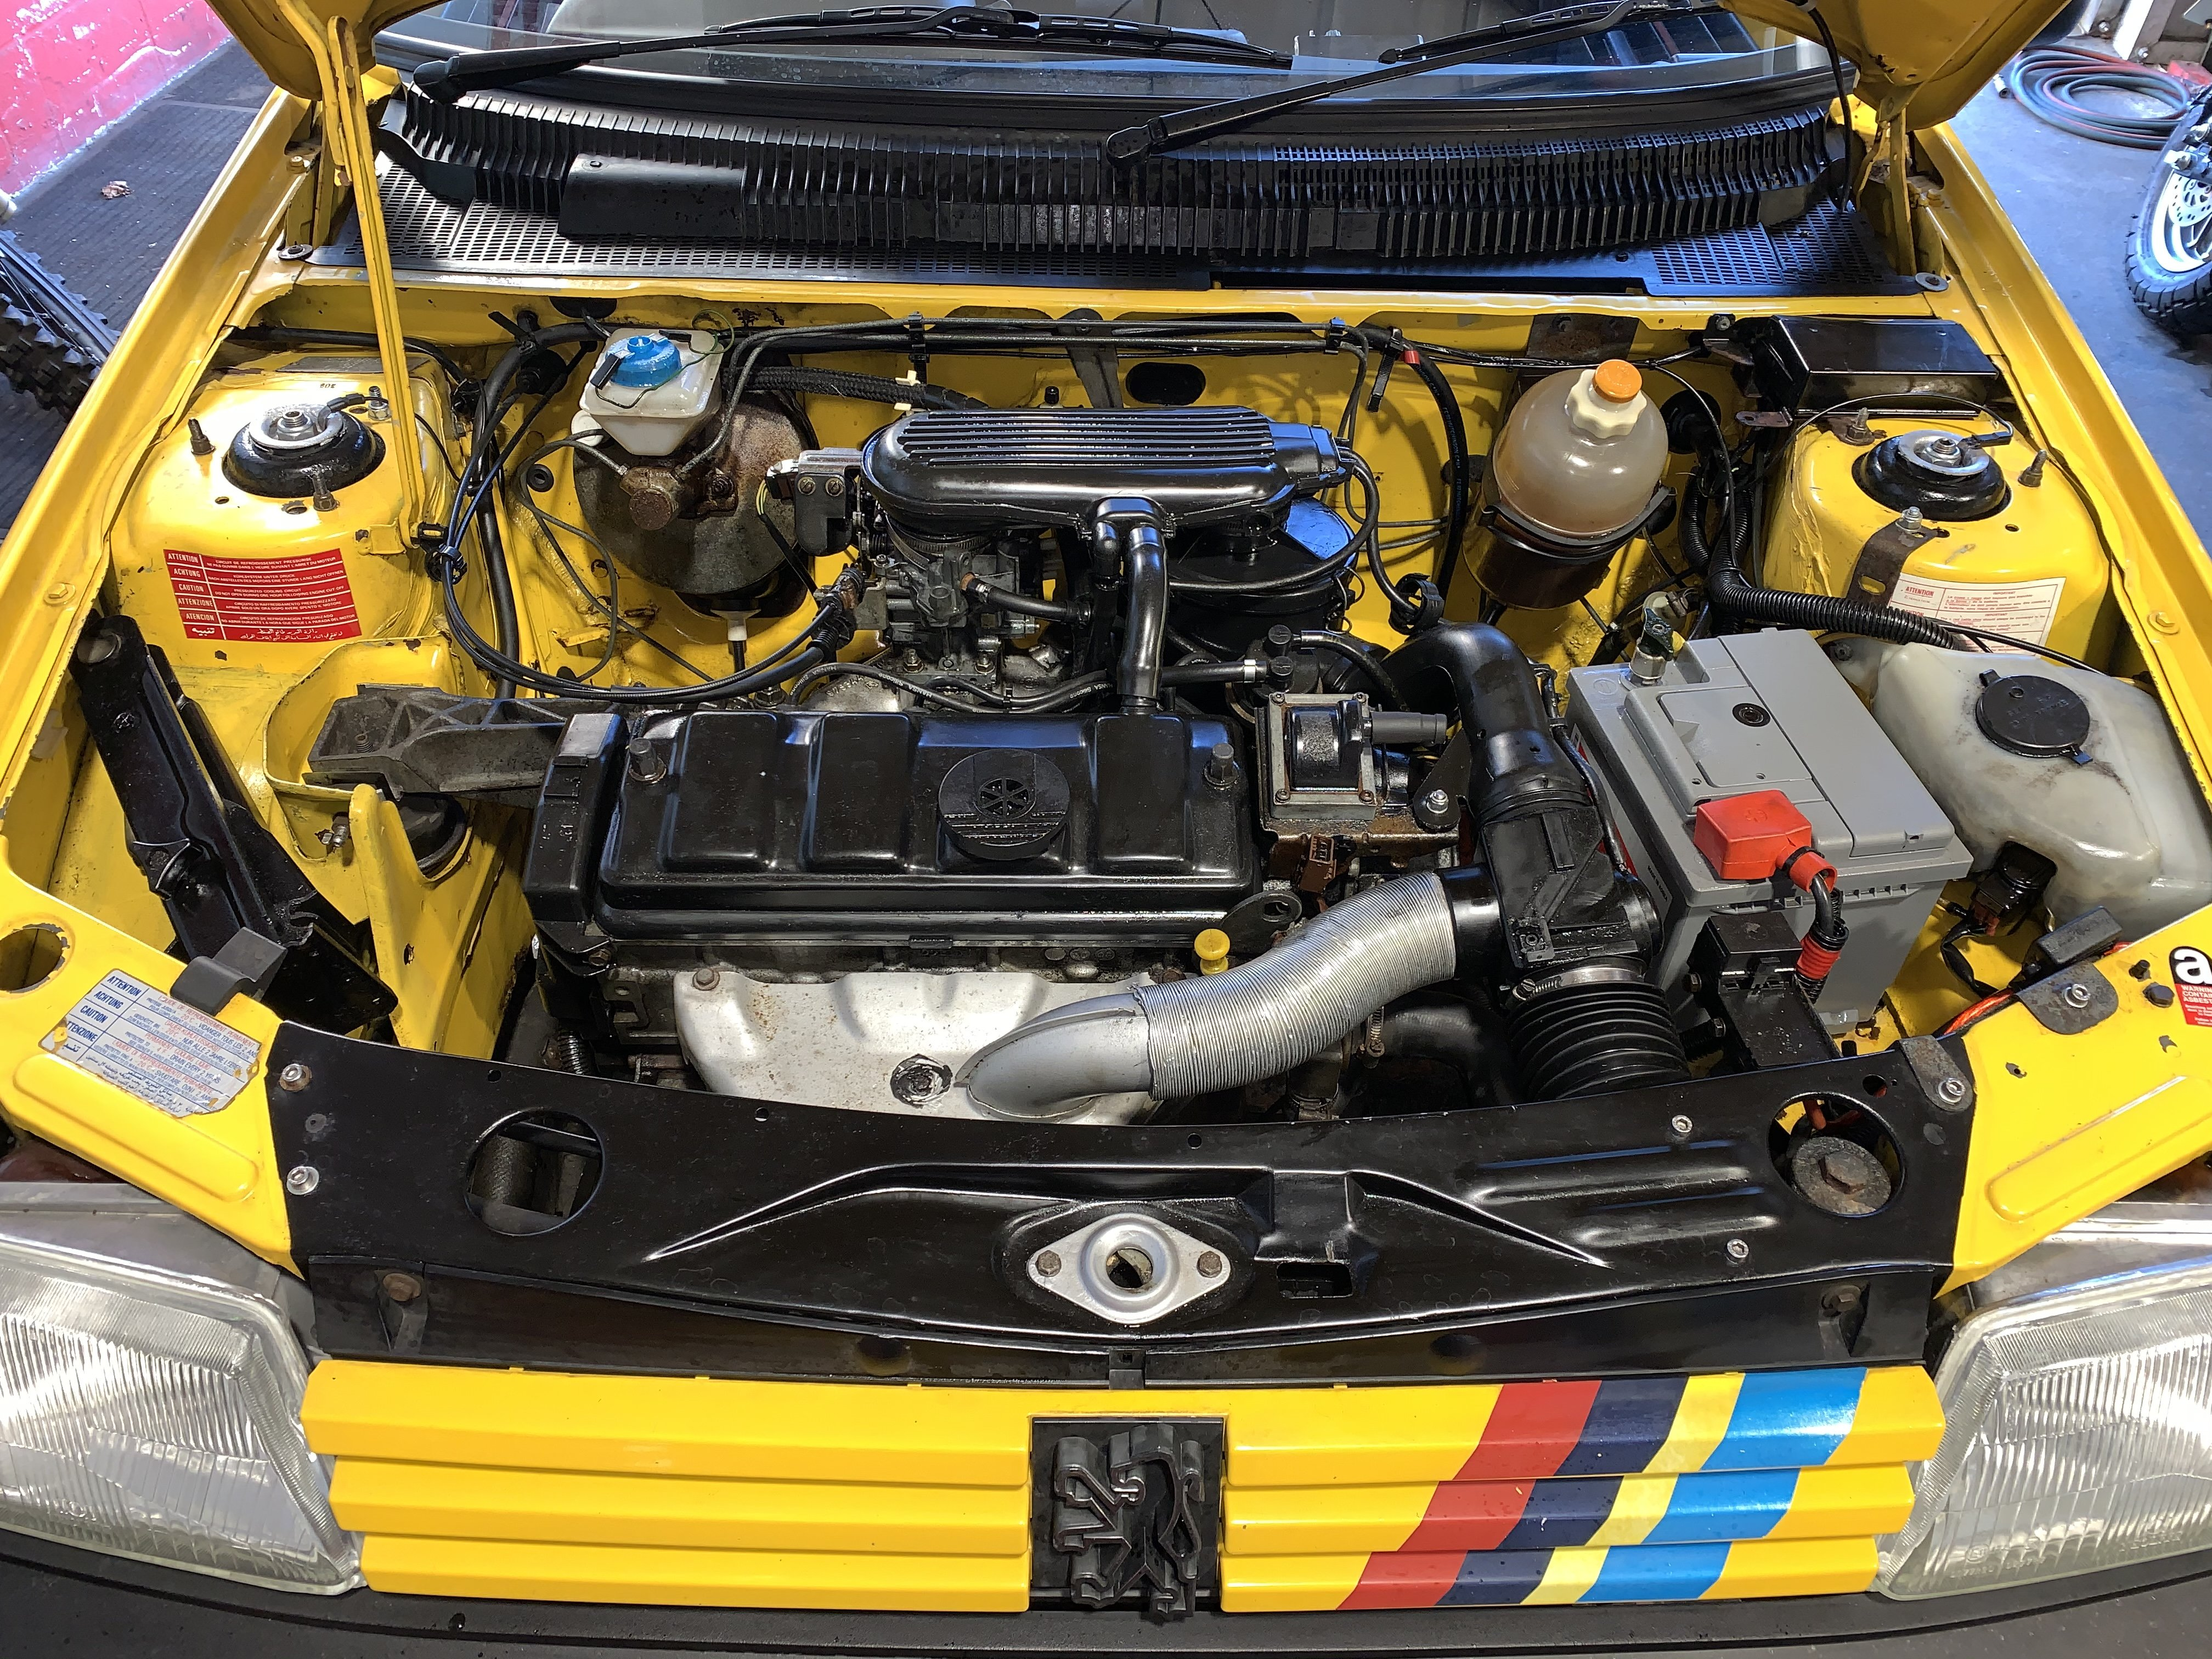 1992 Peugeot 205 Rallye For Sale (picture 11 of 12)